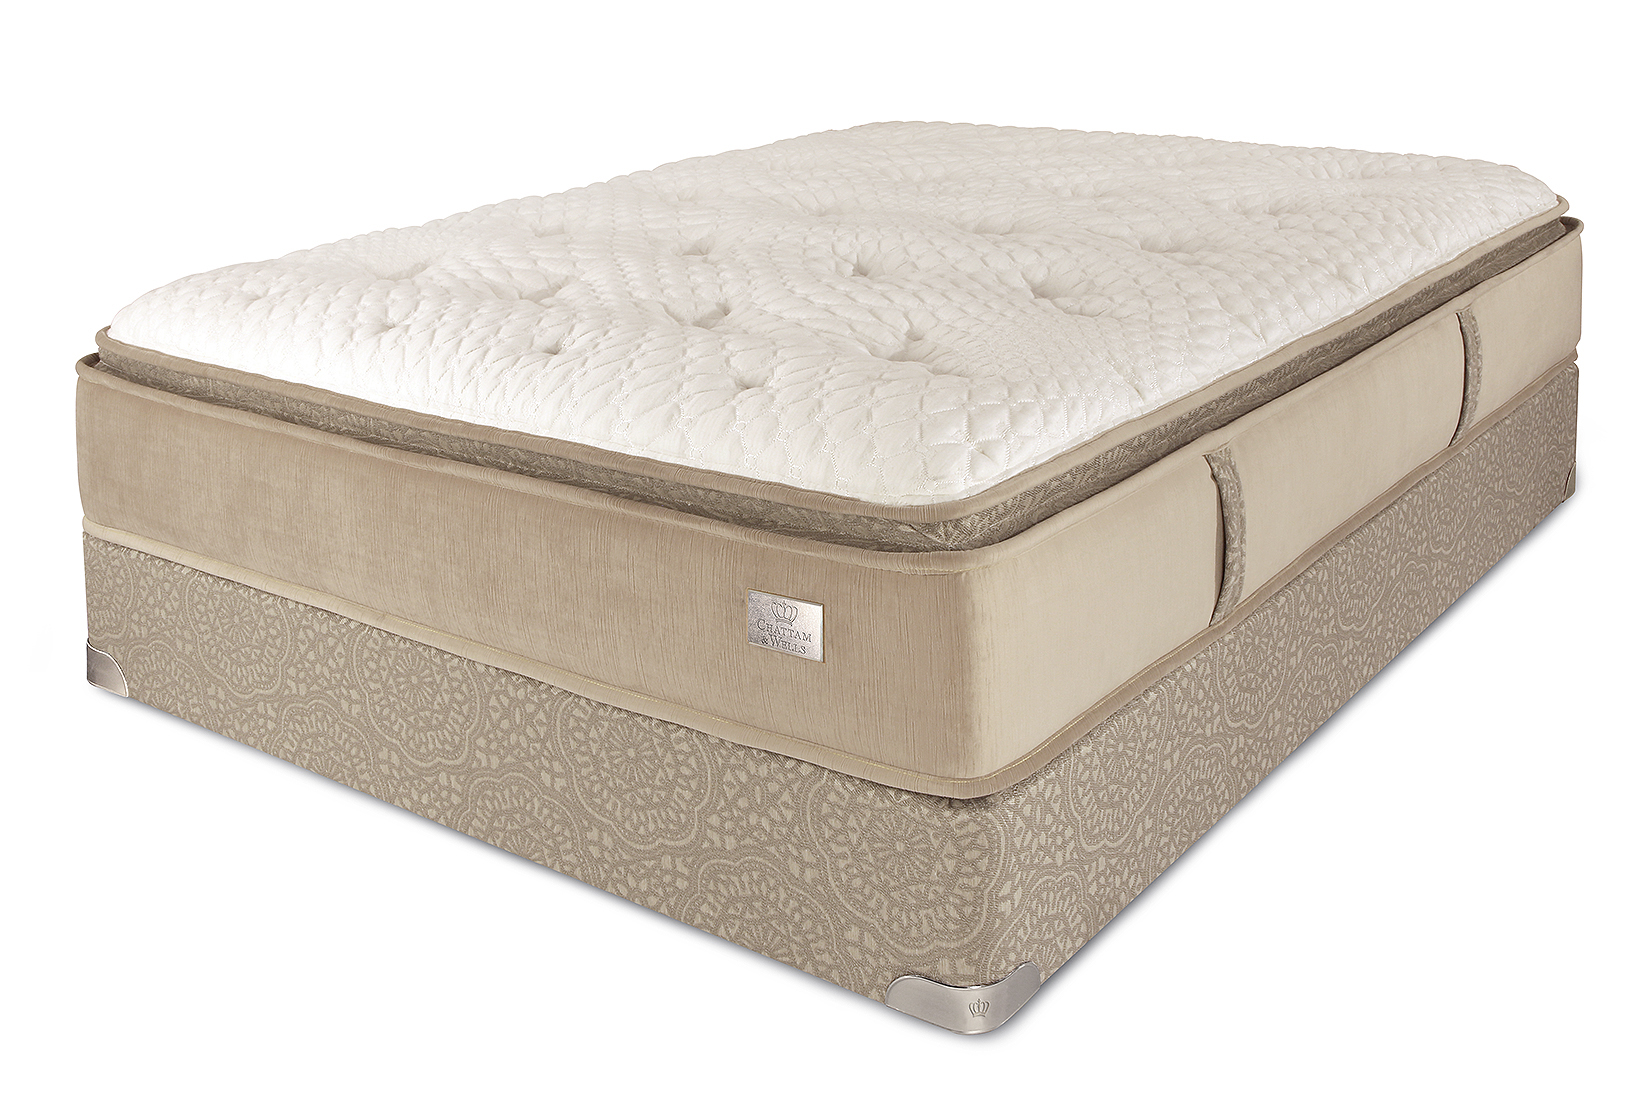 Chattam Amp Wells Hamilton Pillow Top Mattress Reviews